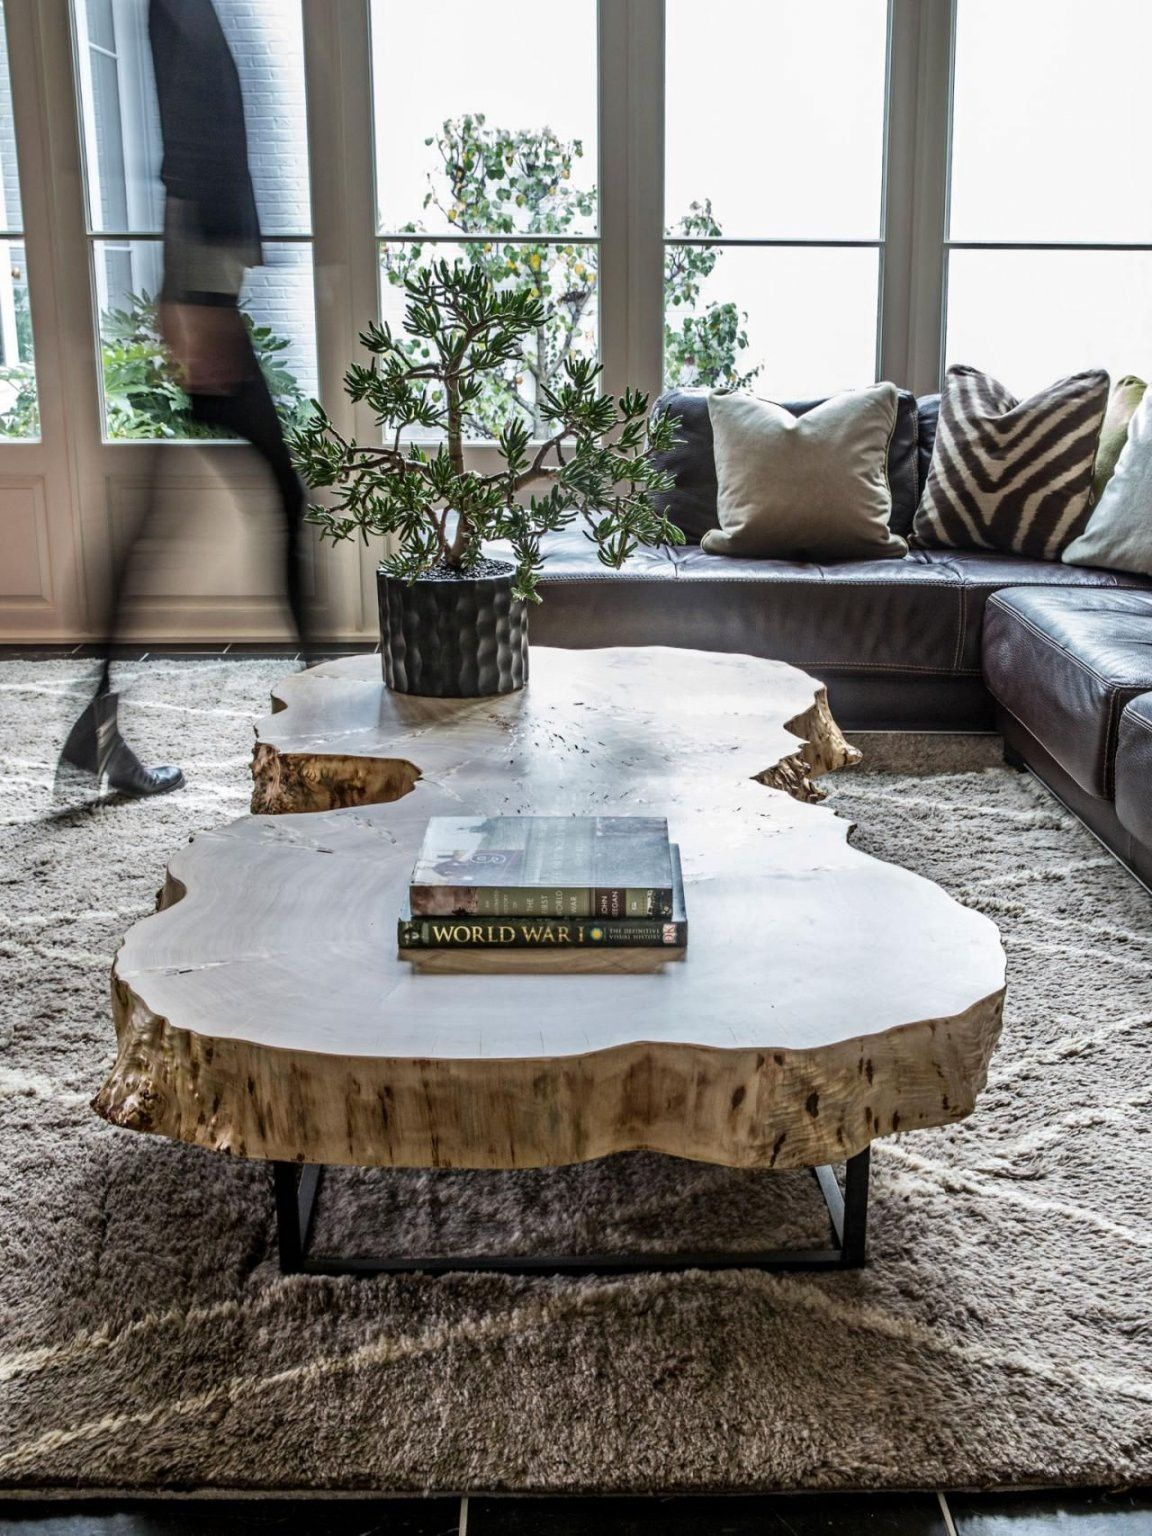 Pin By Frits Verstappen On Interesting Wood And Wood Veneer Uses Coffee Table Wood Log Coffee Table Eclectic Coffee Tables [ 1200 x 1291 Pixel ]